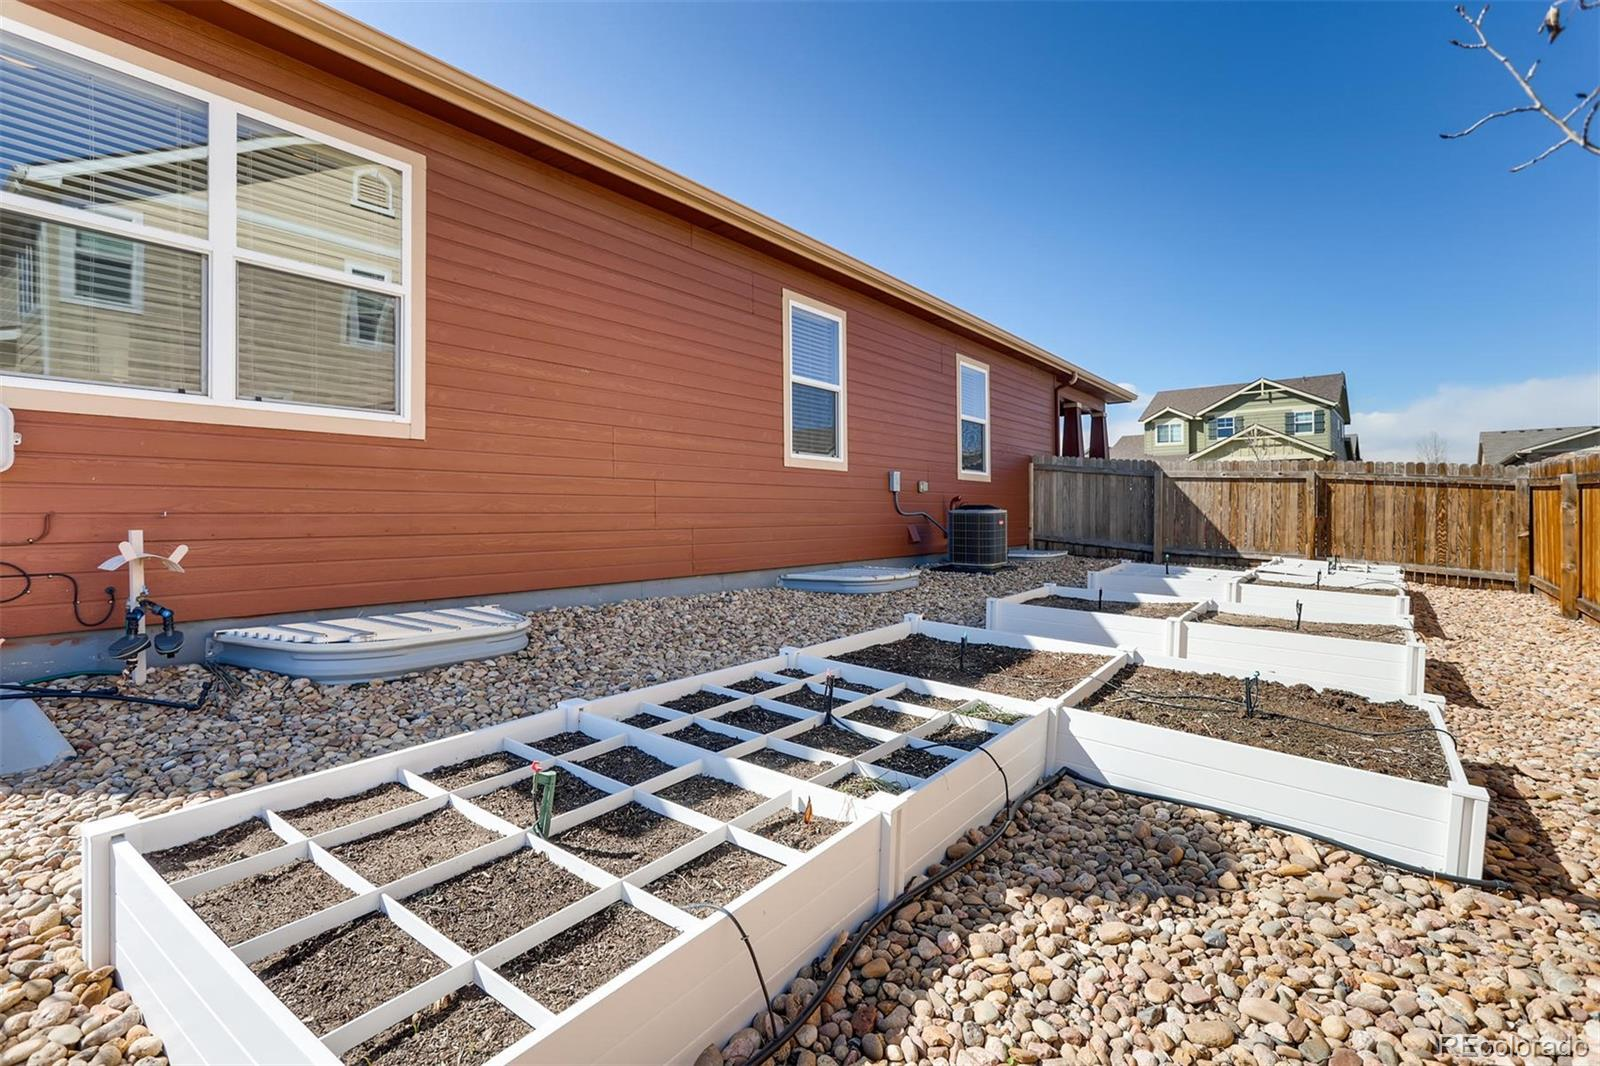 MLS# 2997117 - 27 - 8332 Raspberry Drive, Frederick, CO 80504